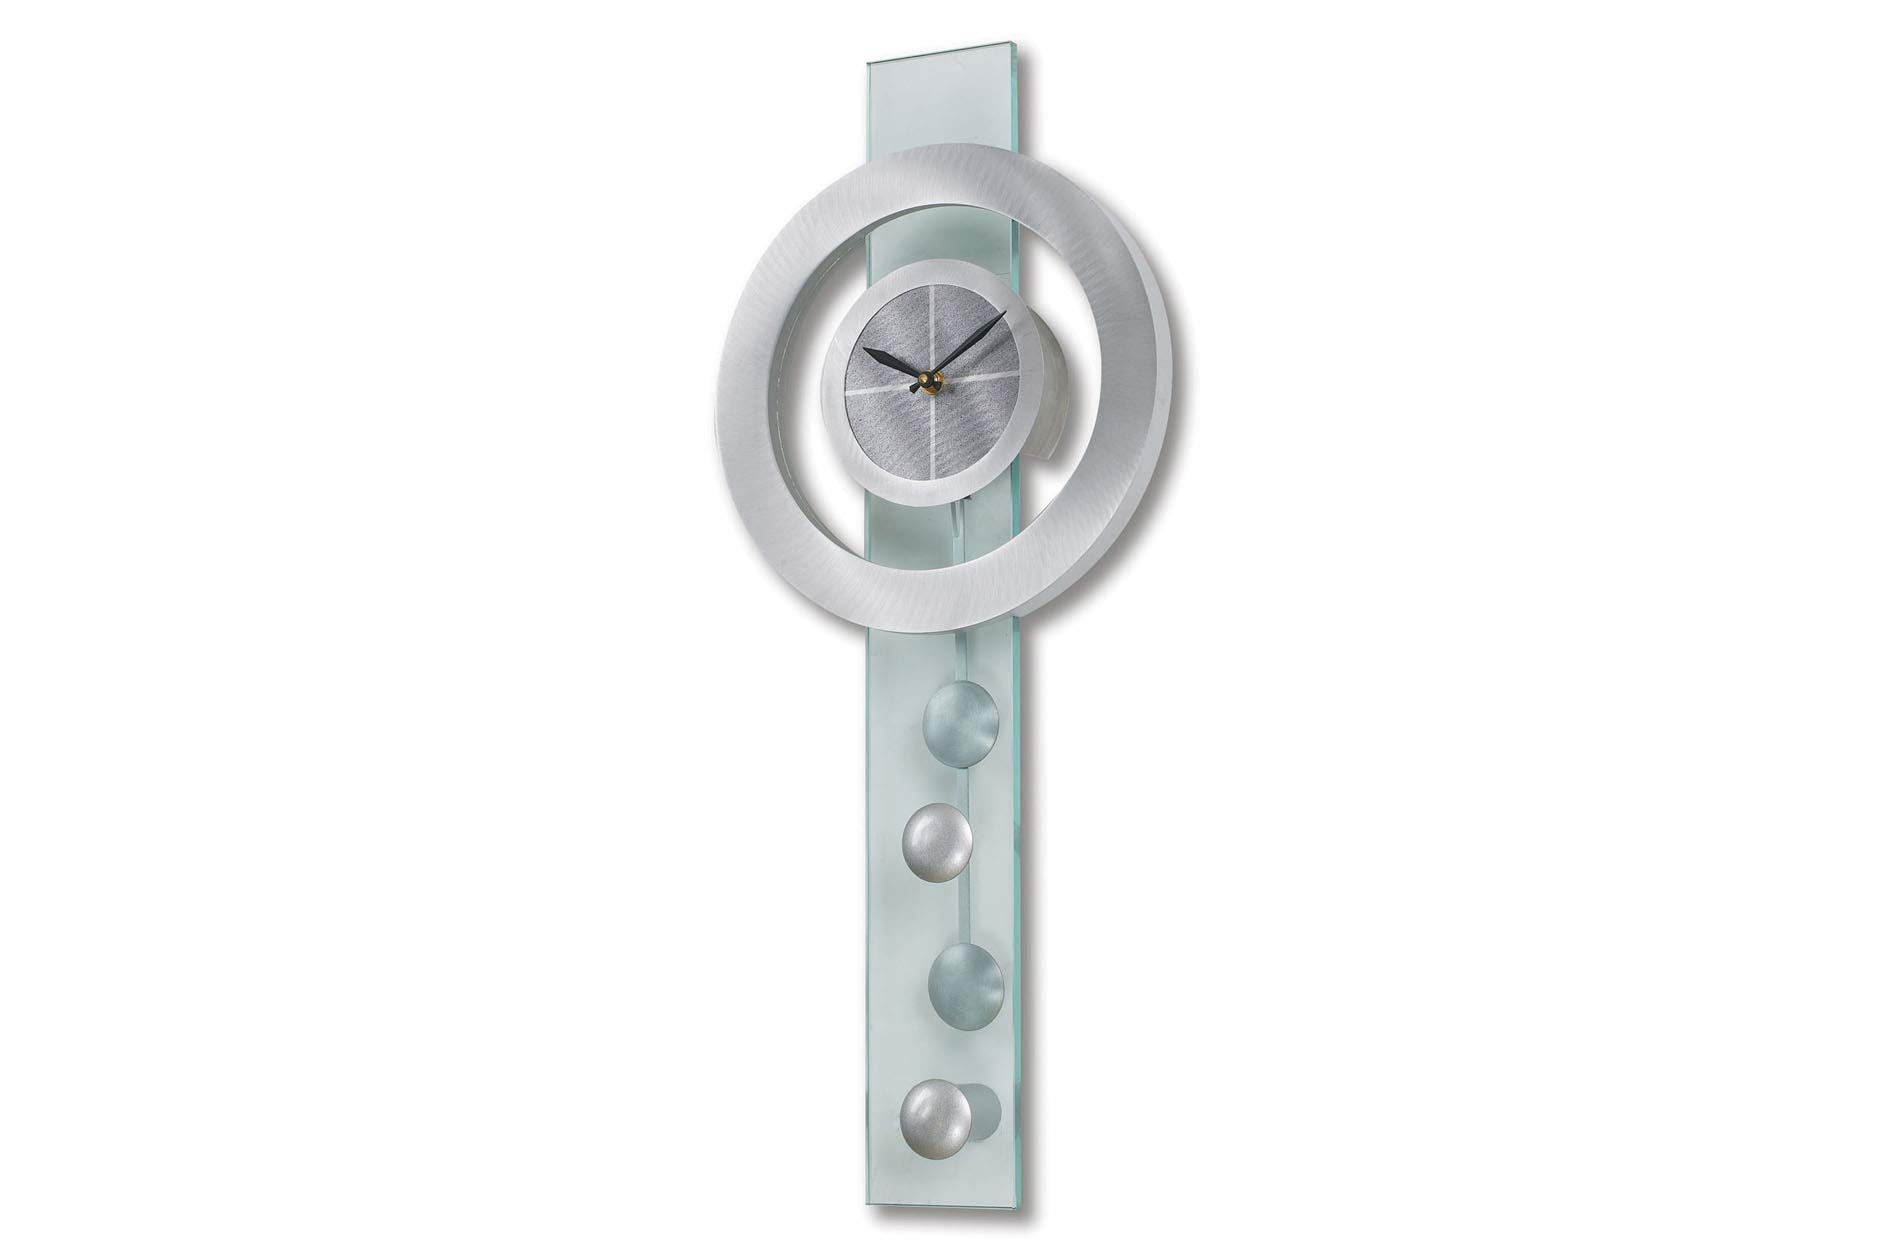 Jon Gilmore Designs 'Juggling Time' Silver Pendulum Wall Clock